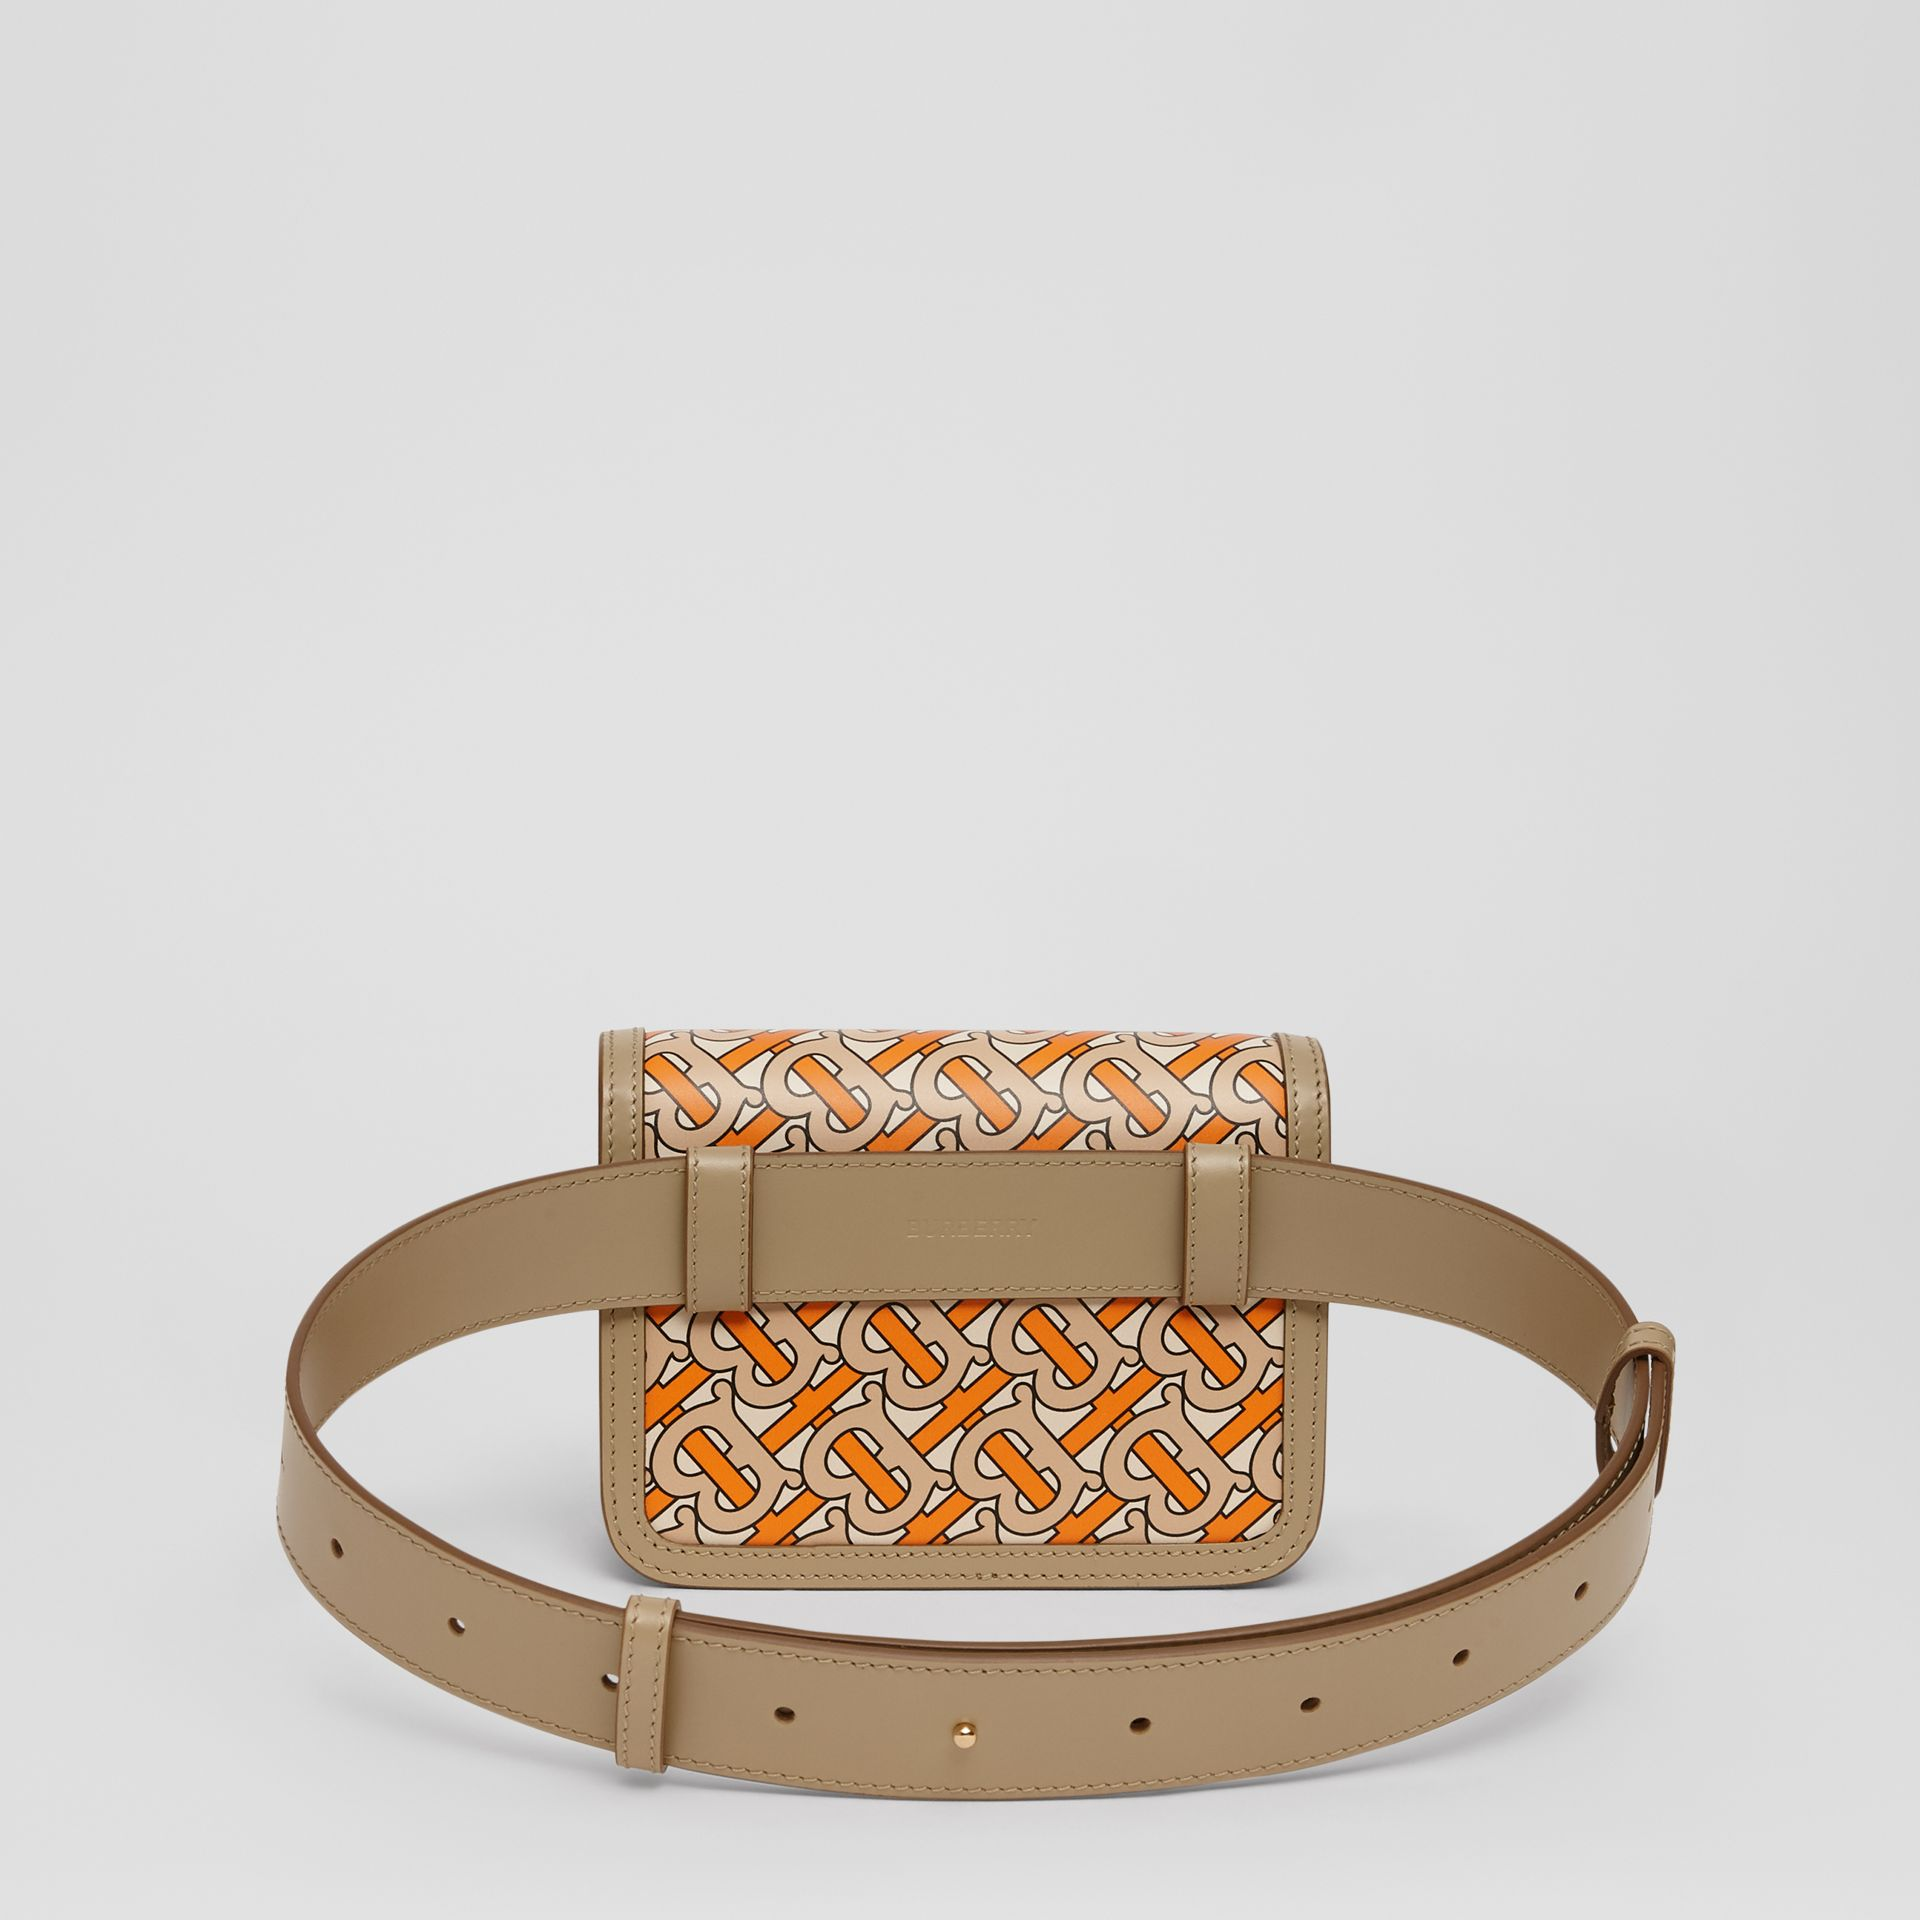 Belted Monogram Print Leather TB Bag in Bright Orange - Women | Burberry Australia - gallery image 6